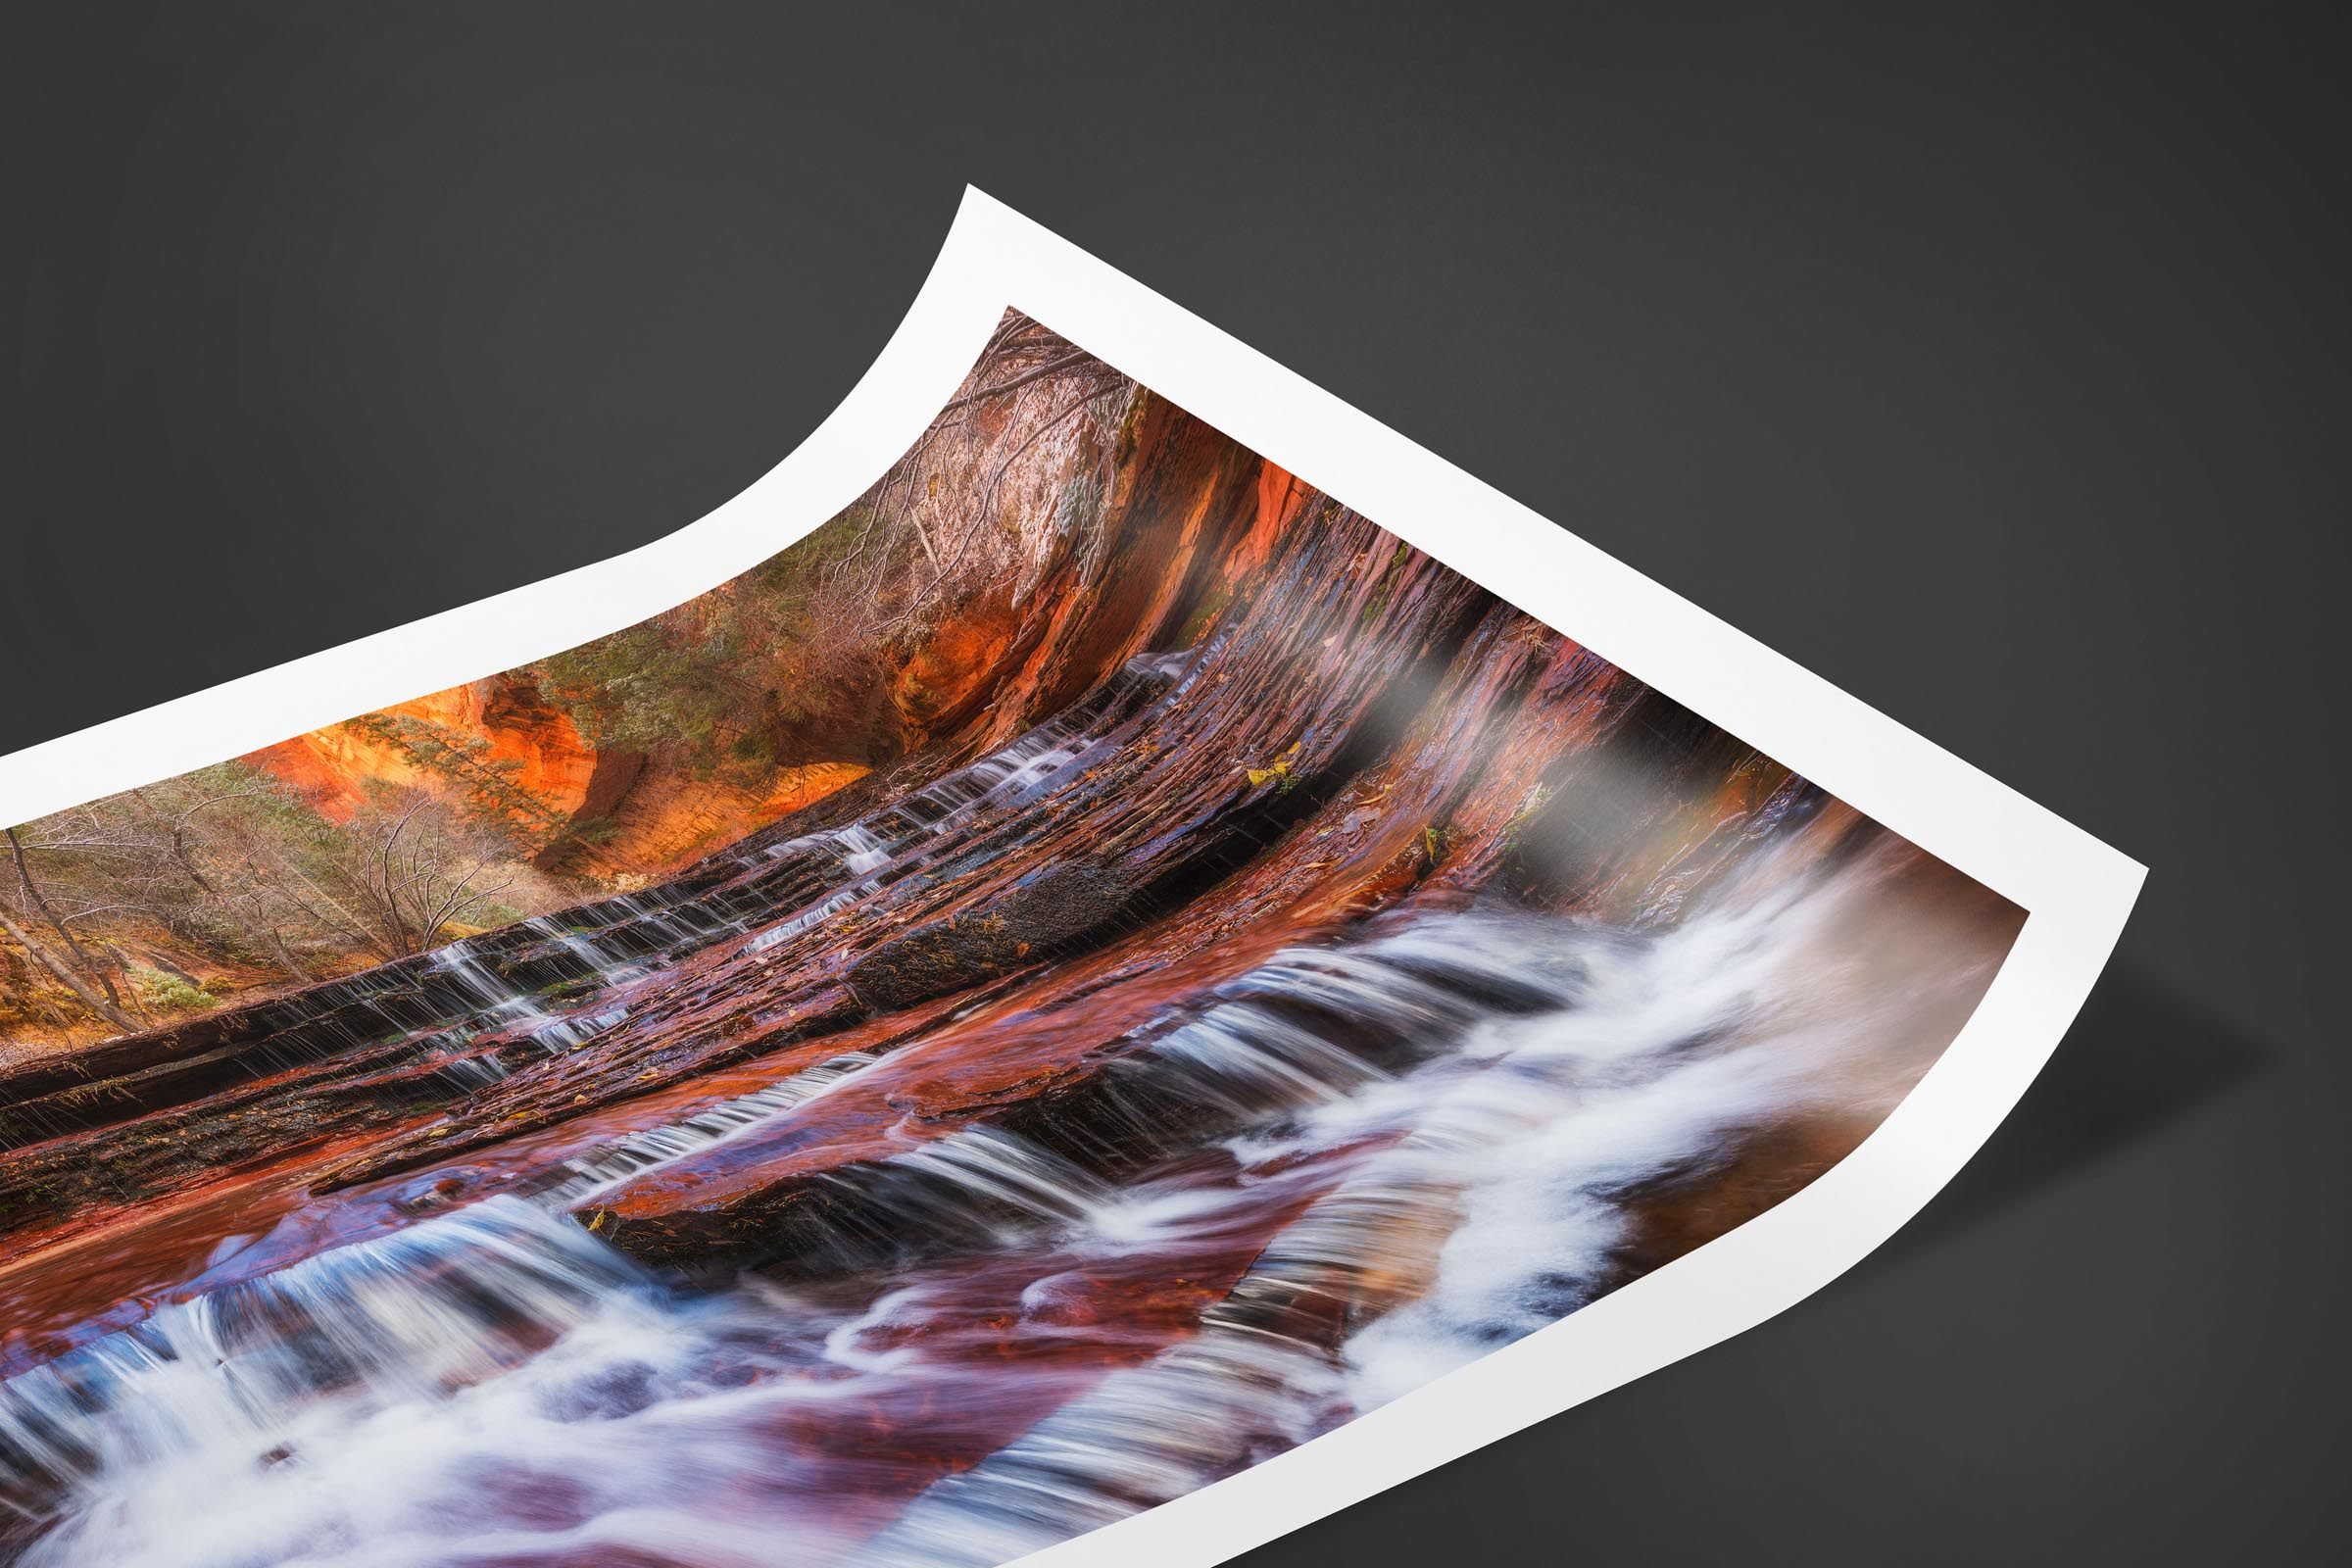 Fine art limited edition print of Archangel Falls in Zion, Utah by Brent Goldman Photography